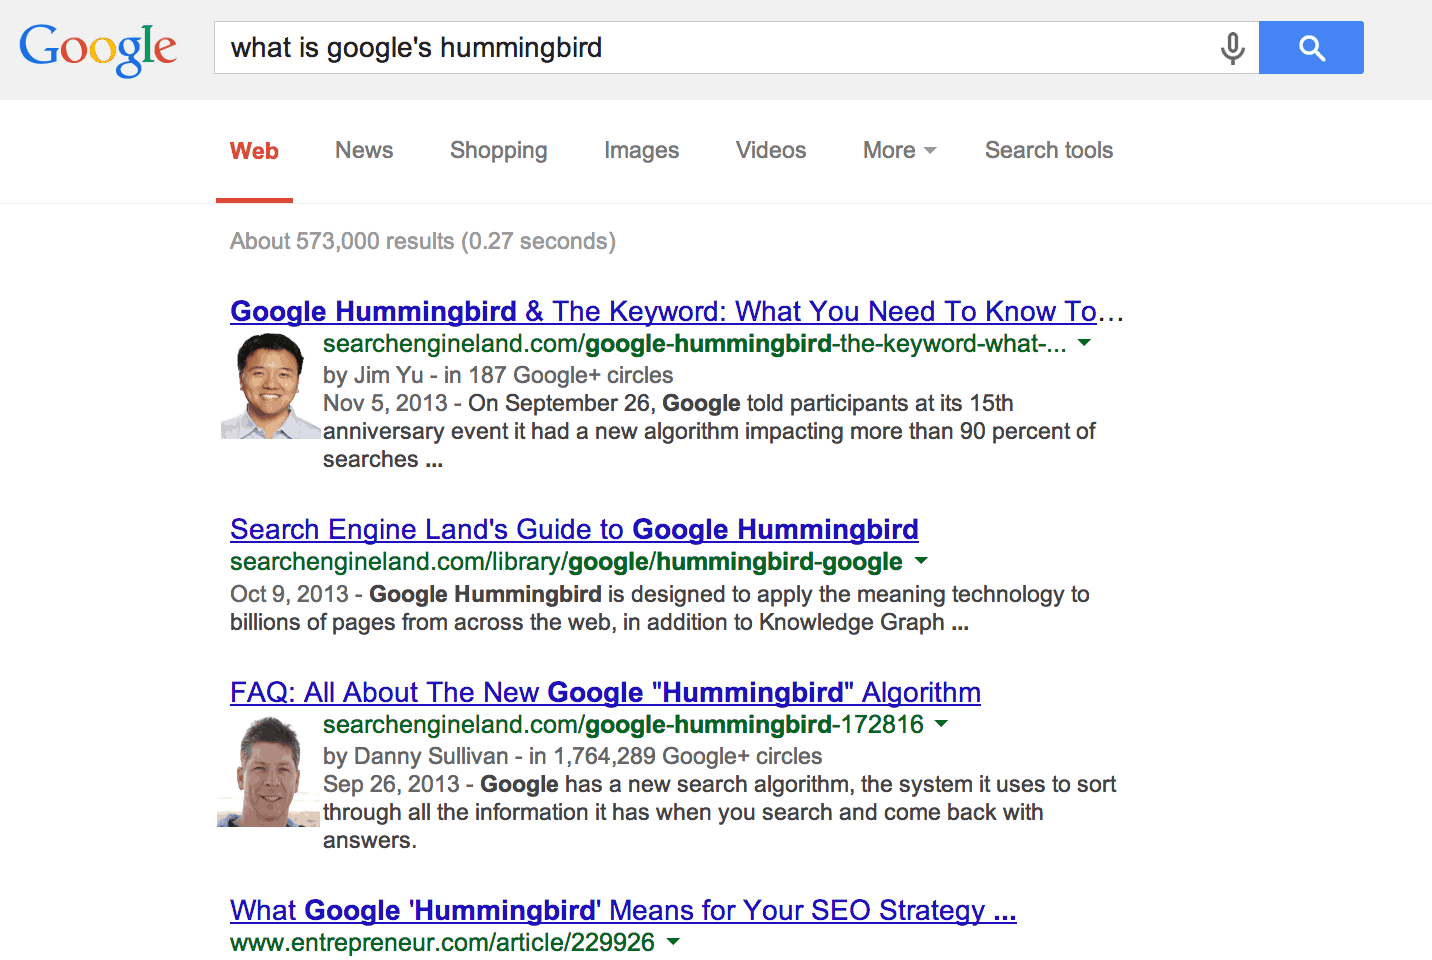 Search results for Google Hummingbird, 2013